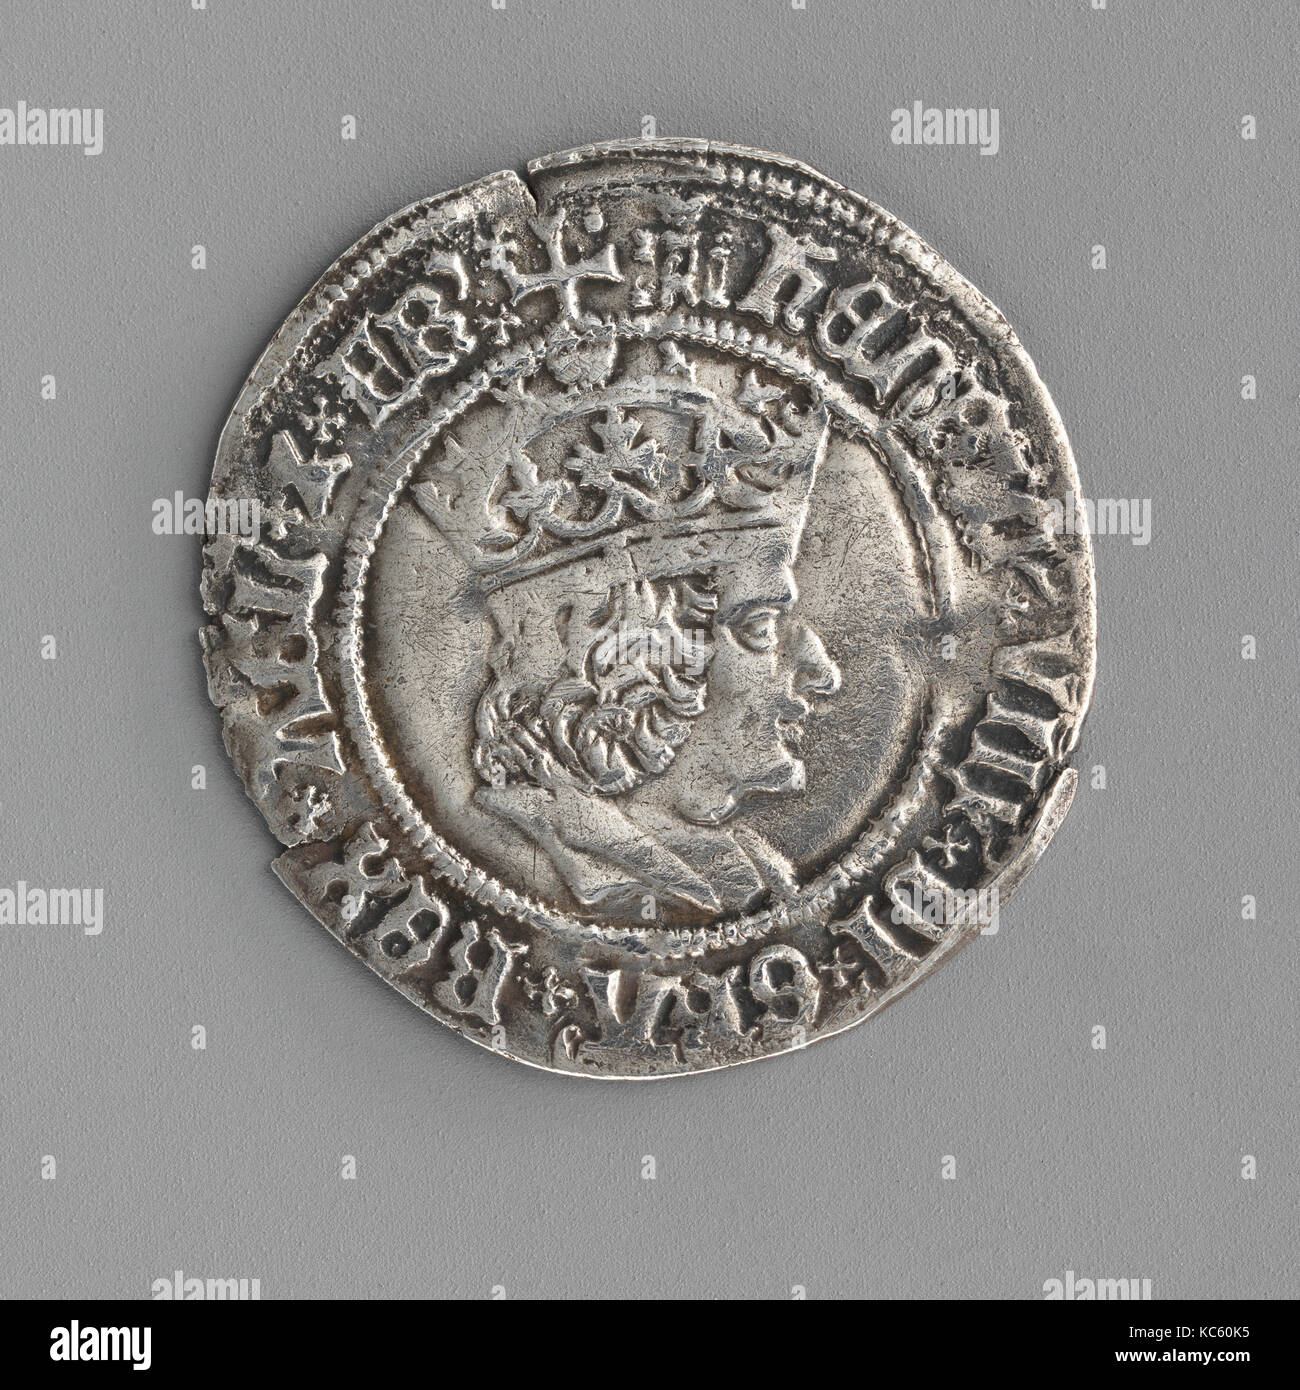 Groat of Henry VIII (first coinage), 1509–26, British, Silver, Diameter: 15/16 in. (2.4 cm), Coins - Stock Image